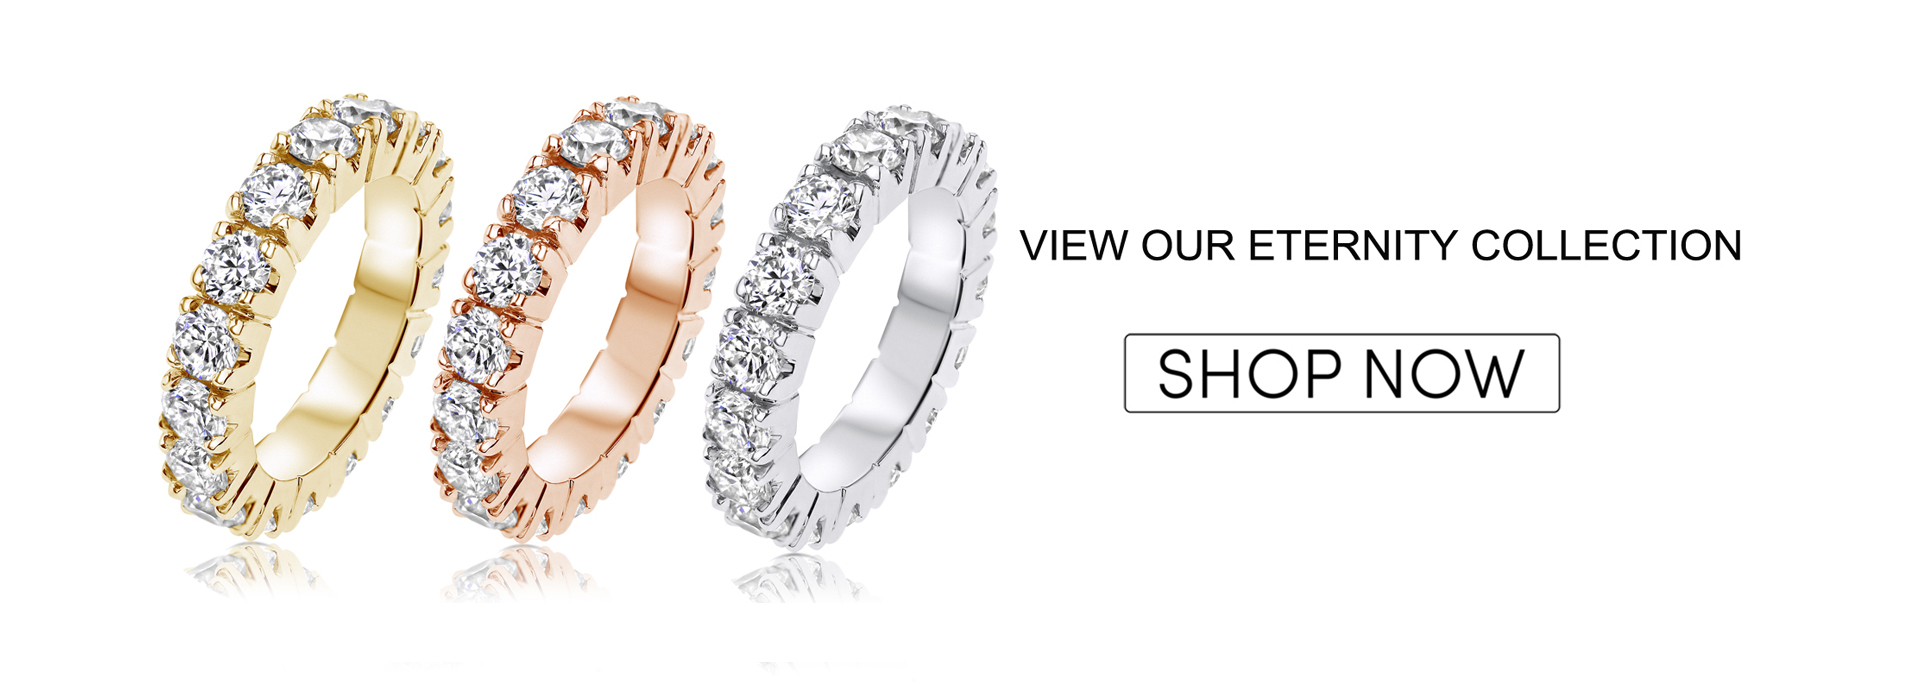 Shop eternity rings